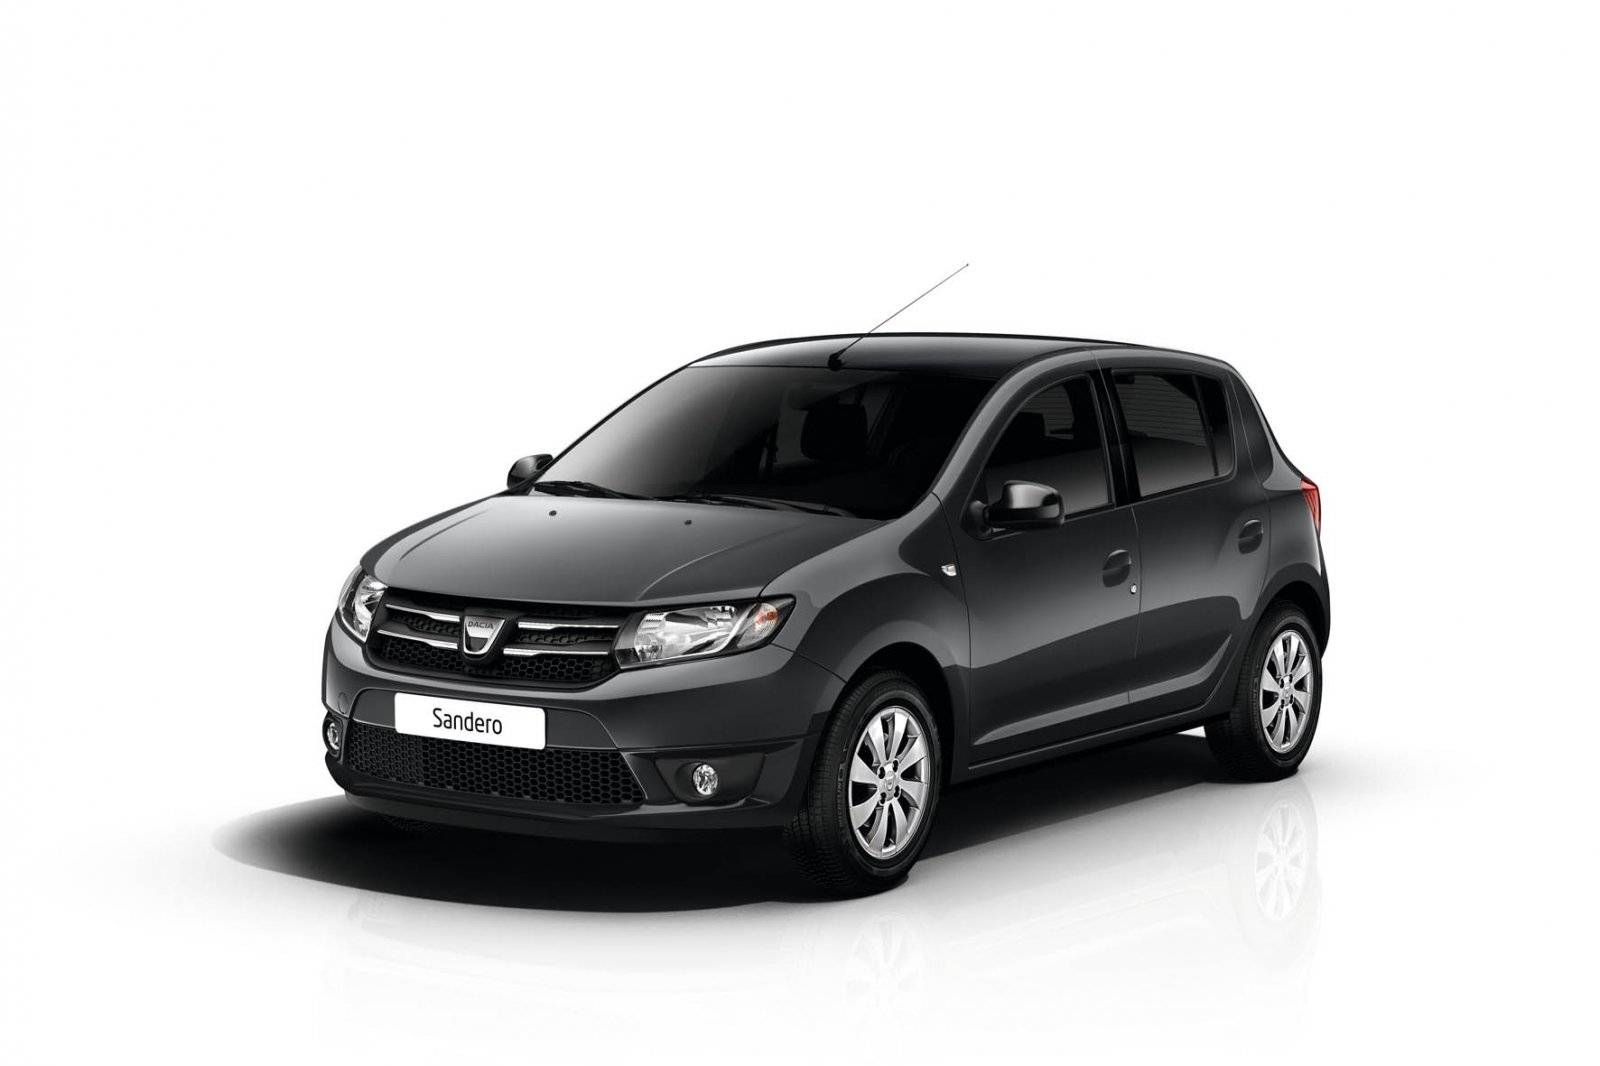 dacia sandero krijgt in zwart gehulde speciale editie autonieuws. Black Bedroom Furniture Sets. Home Design Ideas